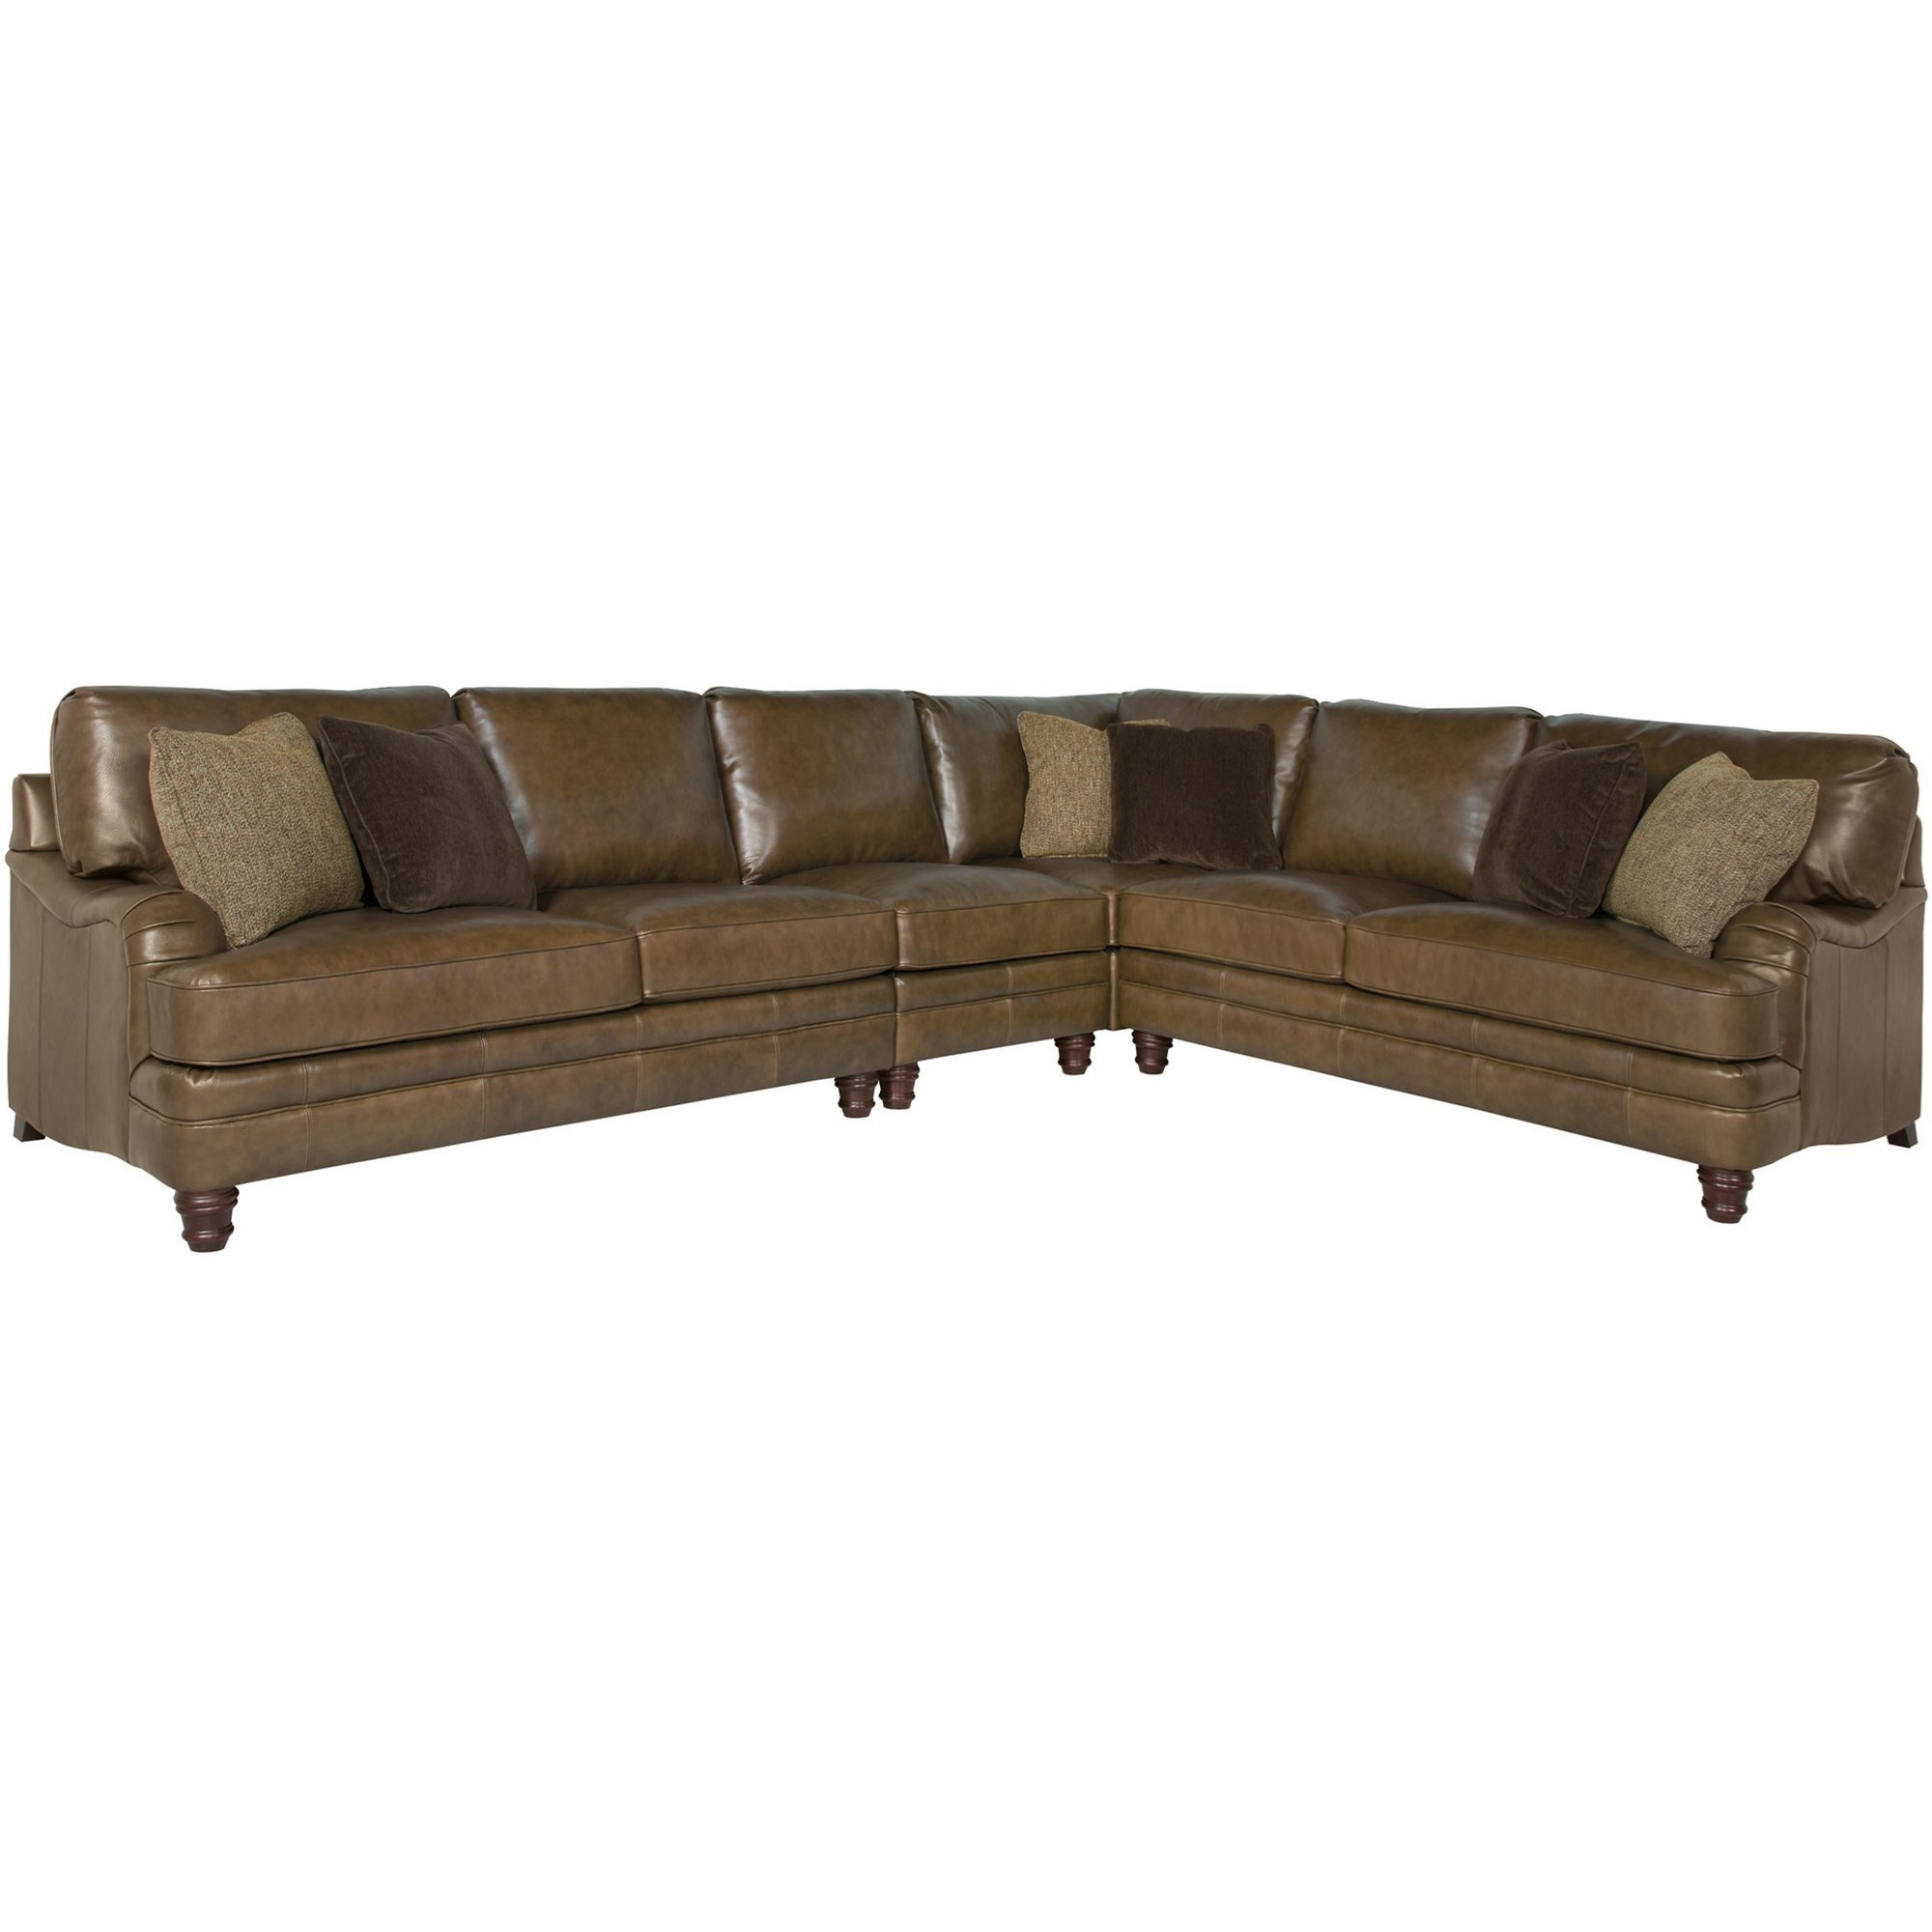 Inspiration about Tarleton 5 Piece Dining Sets Throughout Most Recent Bernhardt Tarleton Traditional Styled Sectional Sofa (#18 of 20)